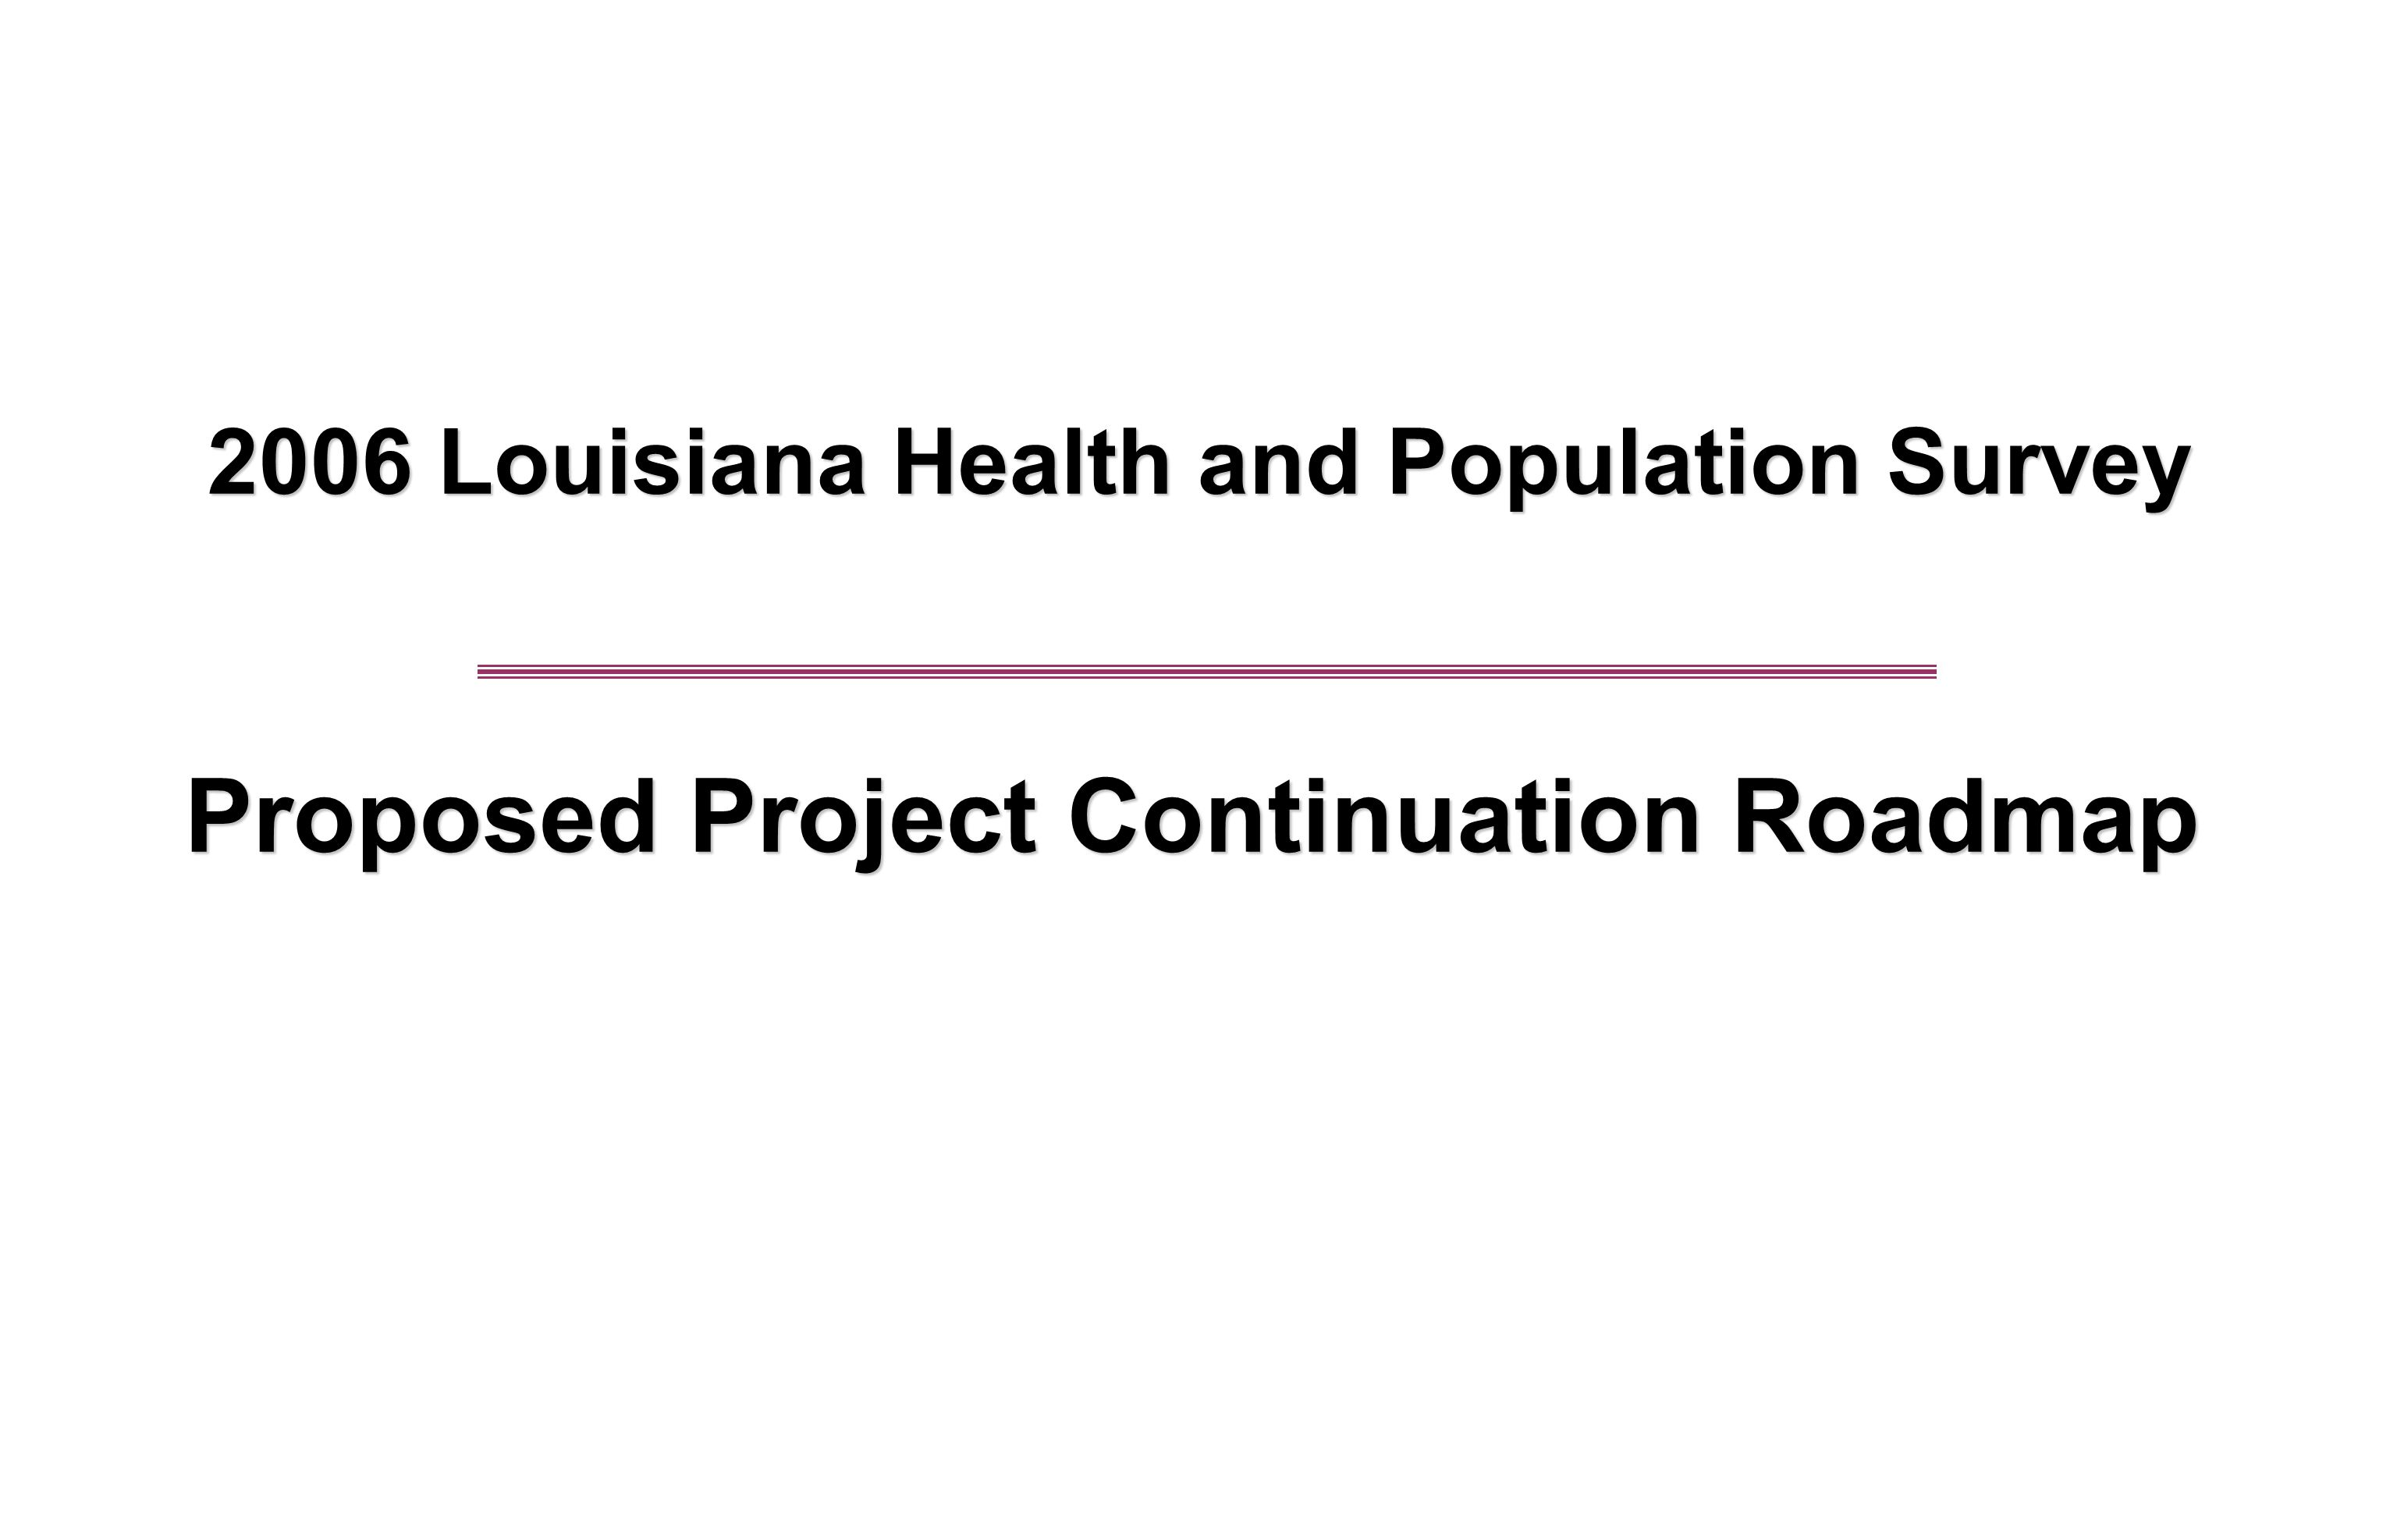 2006 Louisiana Health and Population Survey Proposed Project Continuation Roadmap